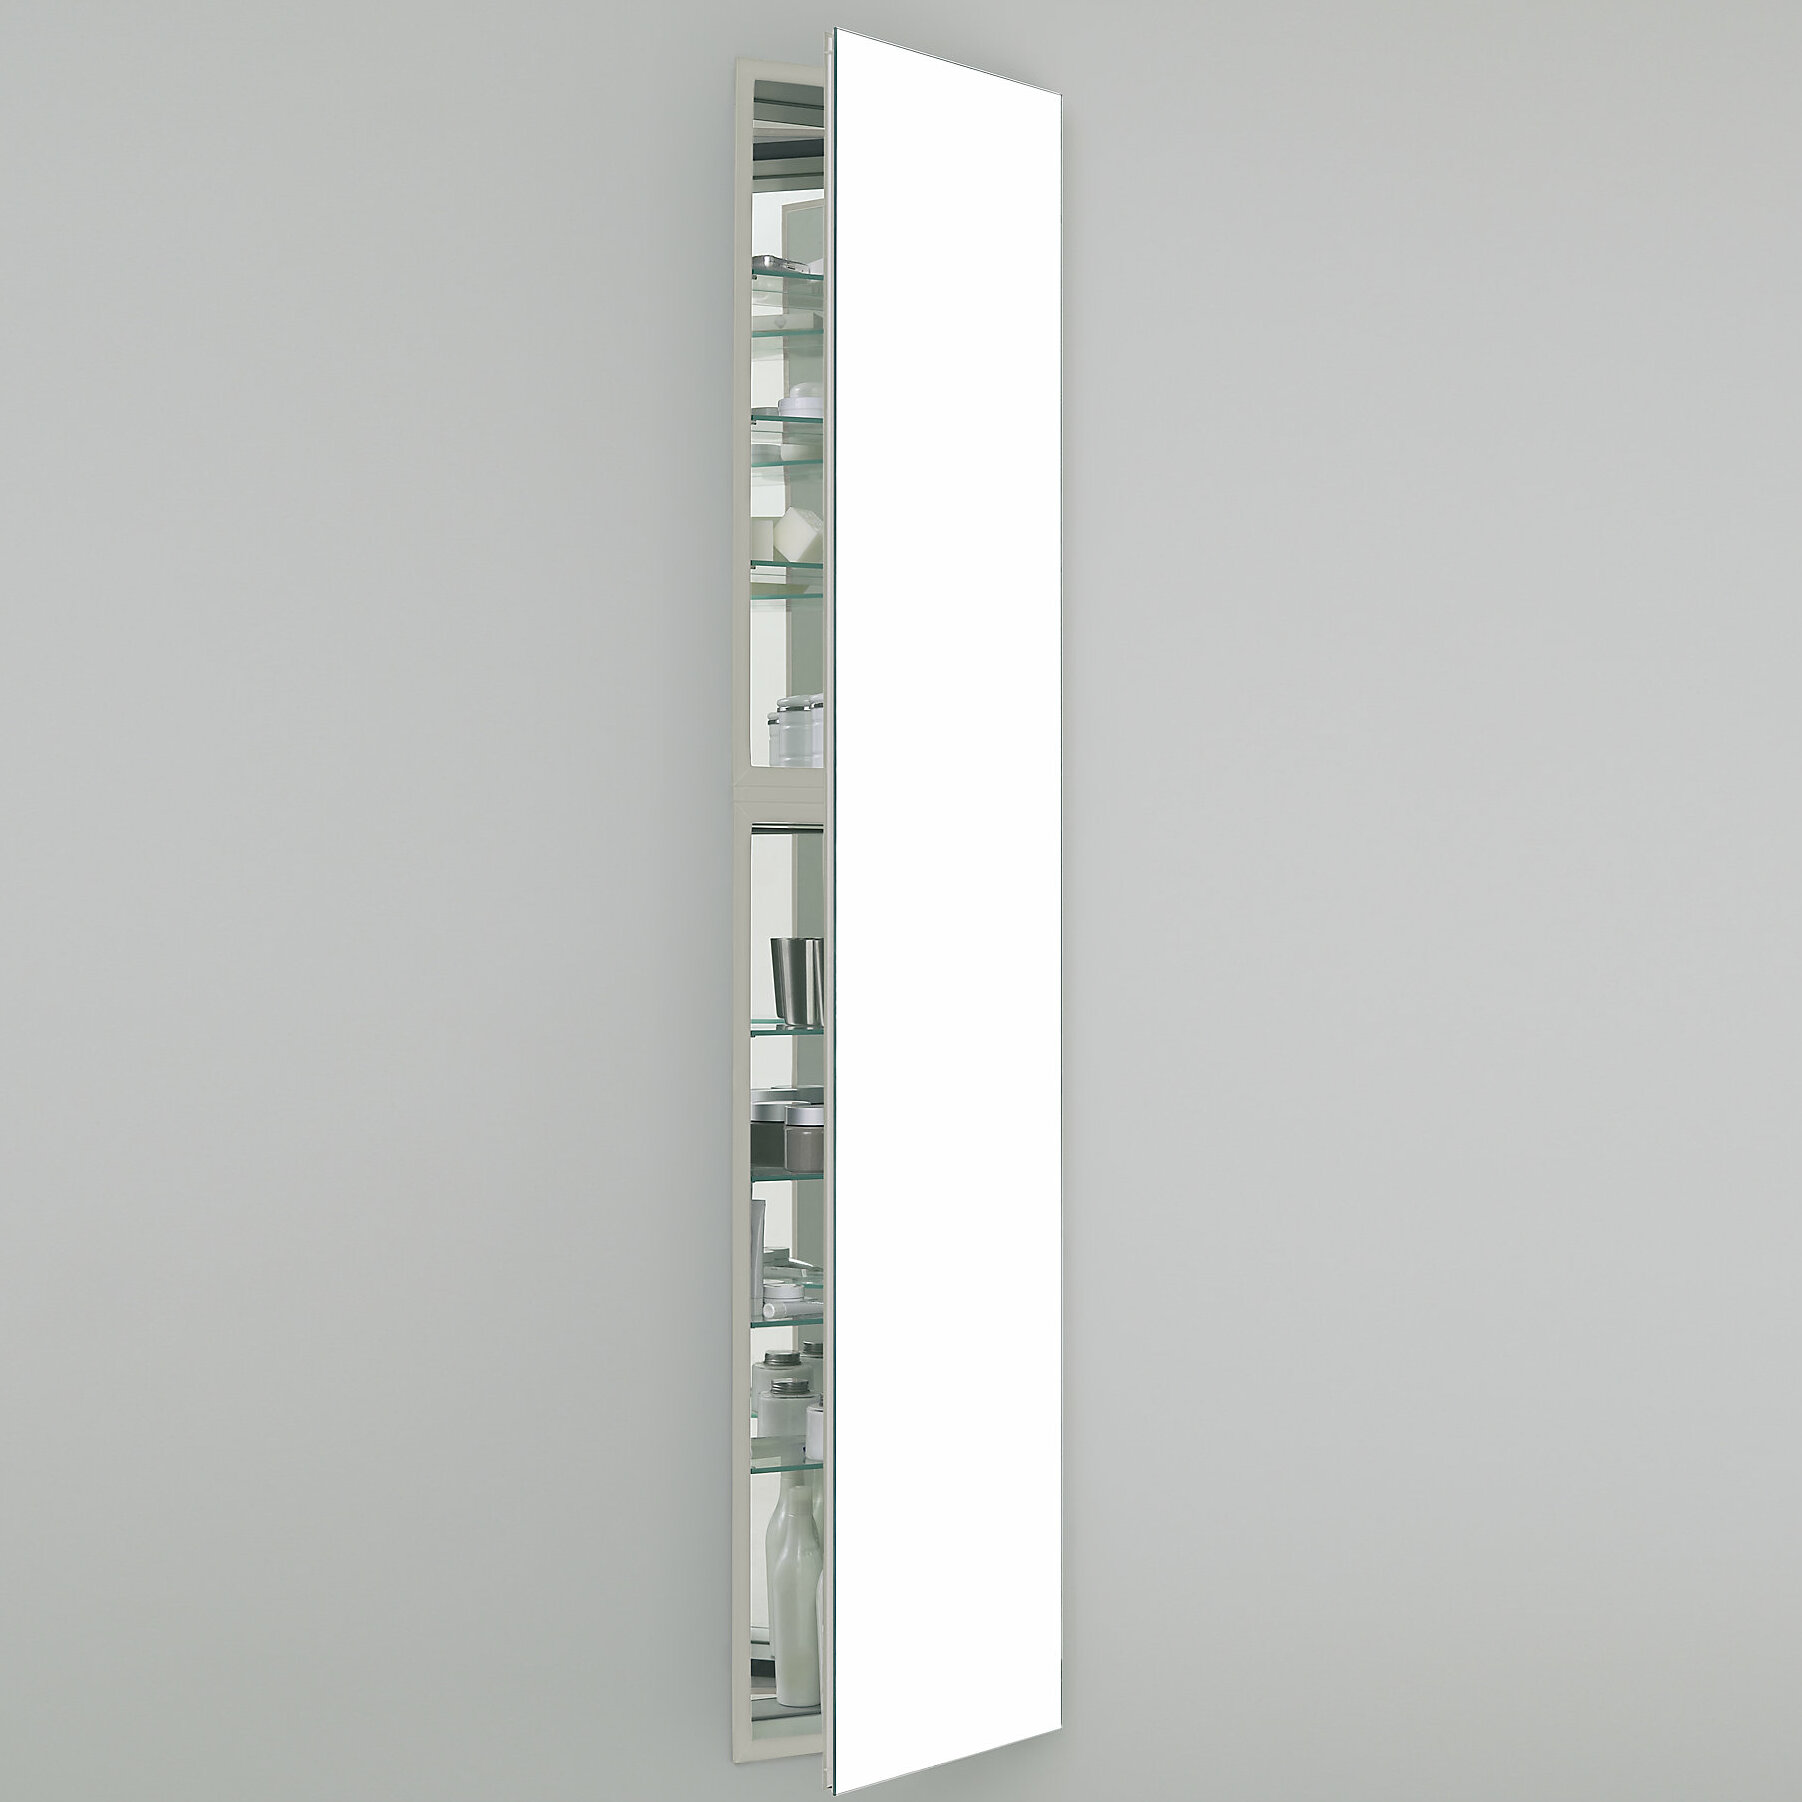 M Series Recessed Or Surface Mount Frameless Medicine Cabinet With 7  Adjustable Shelves And Led Lighting